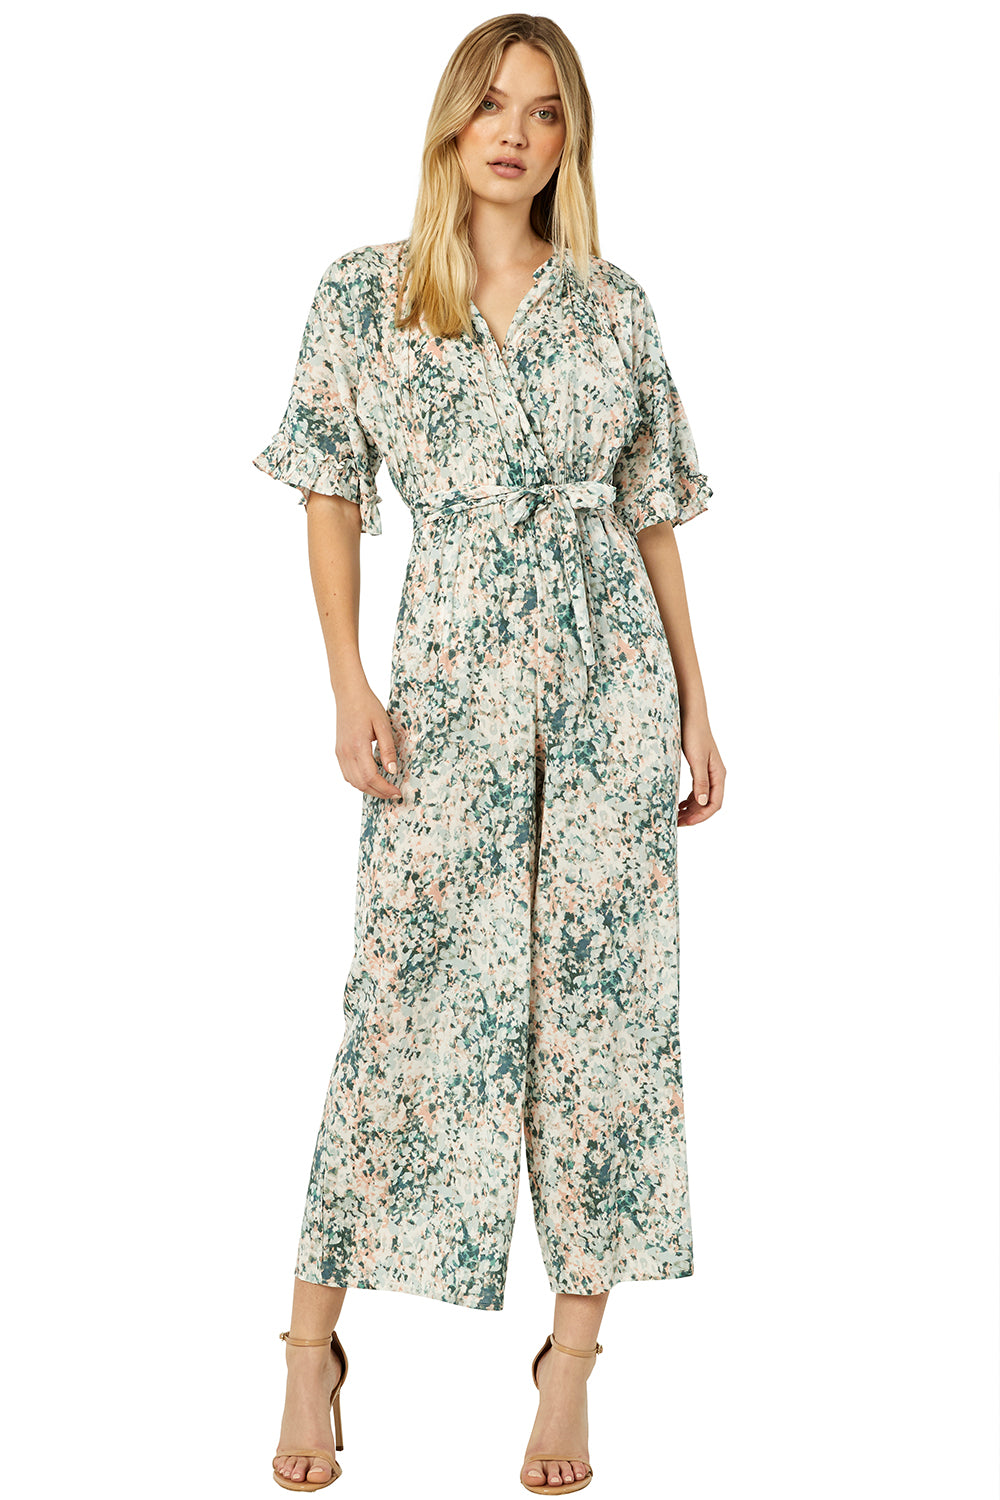 ESTELLA JUMPSUIT - MISA Los Angeles